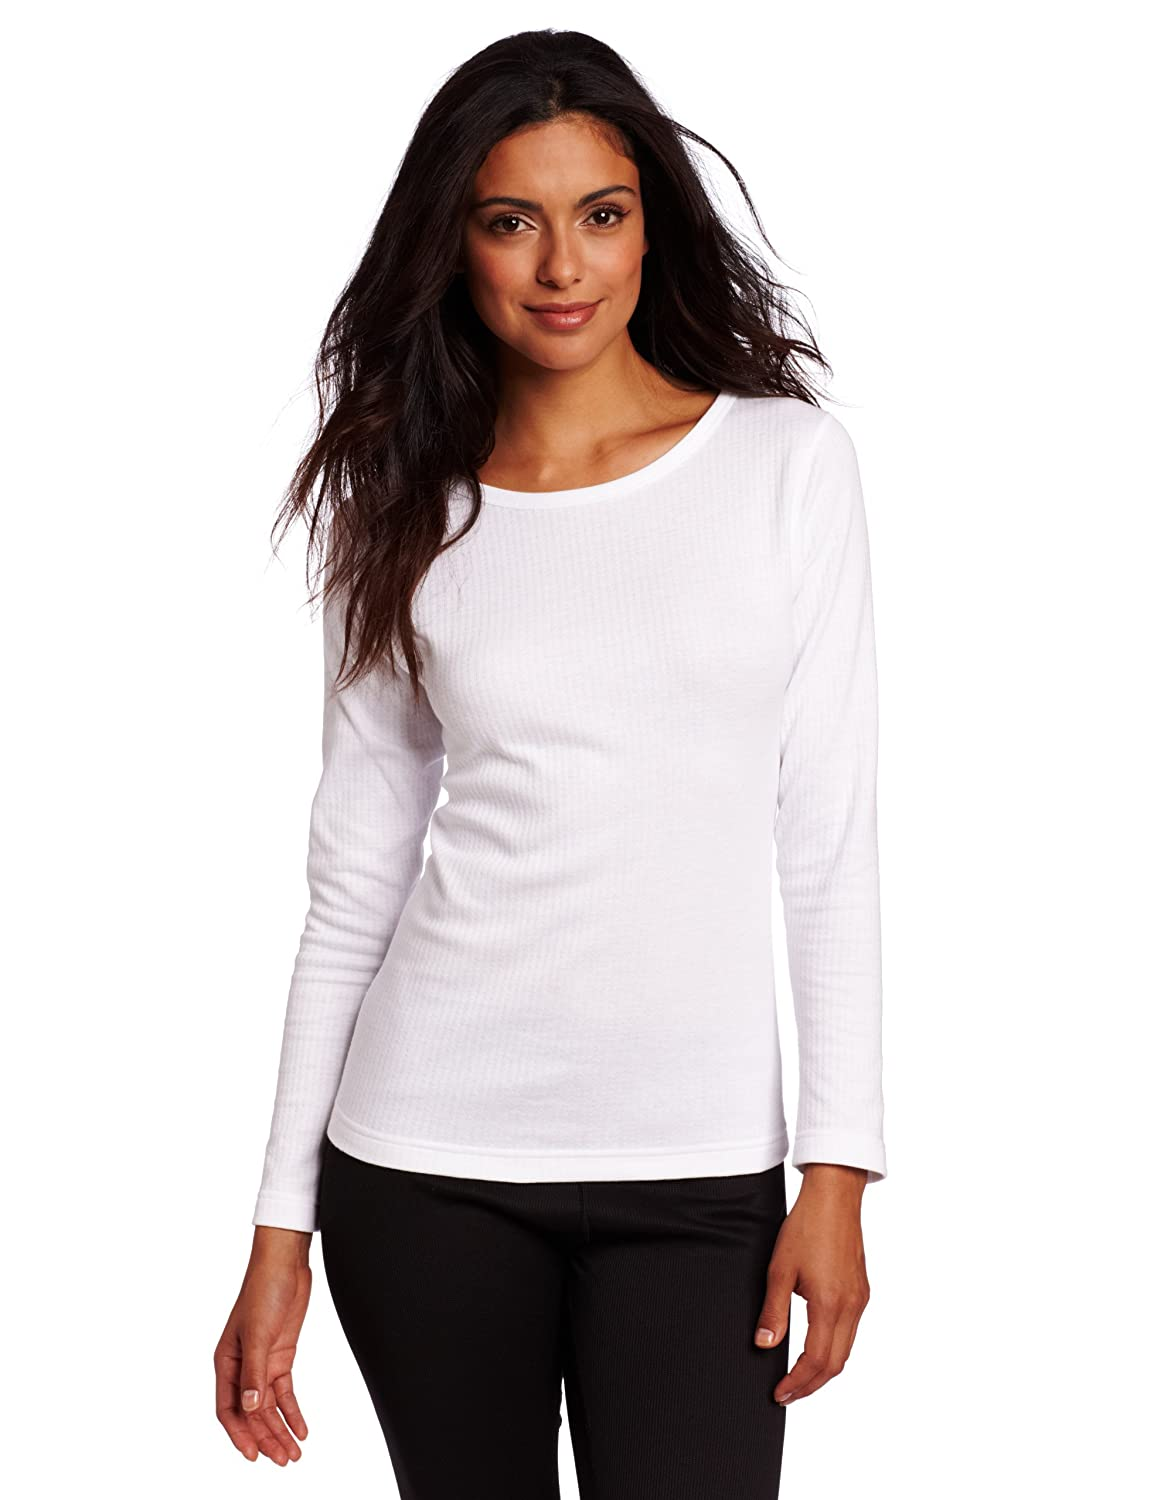 Duofold Women's Mid Weight Wicking Thermal Shirt KMW3